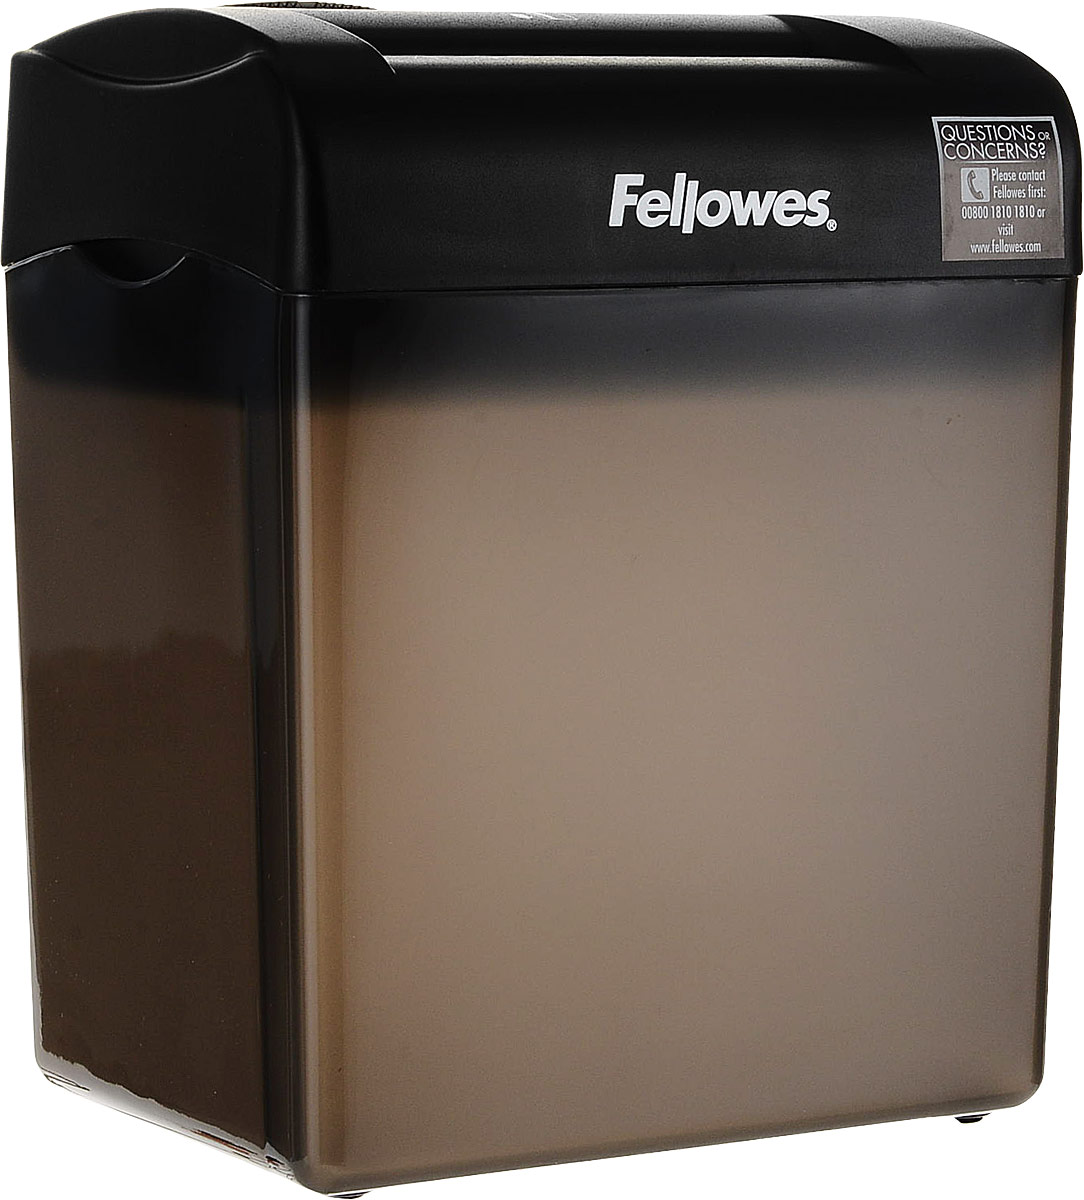 все цены на Шредер Fellowes Powershred Shredmate, Black онлайн